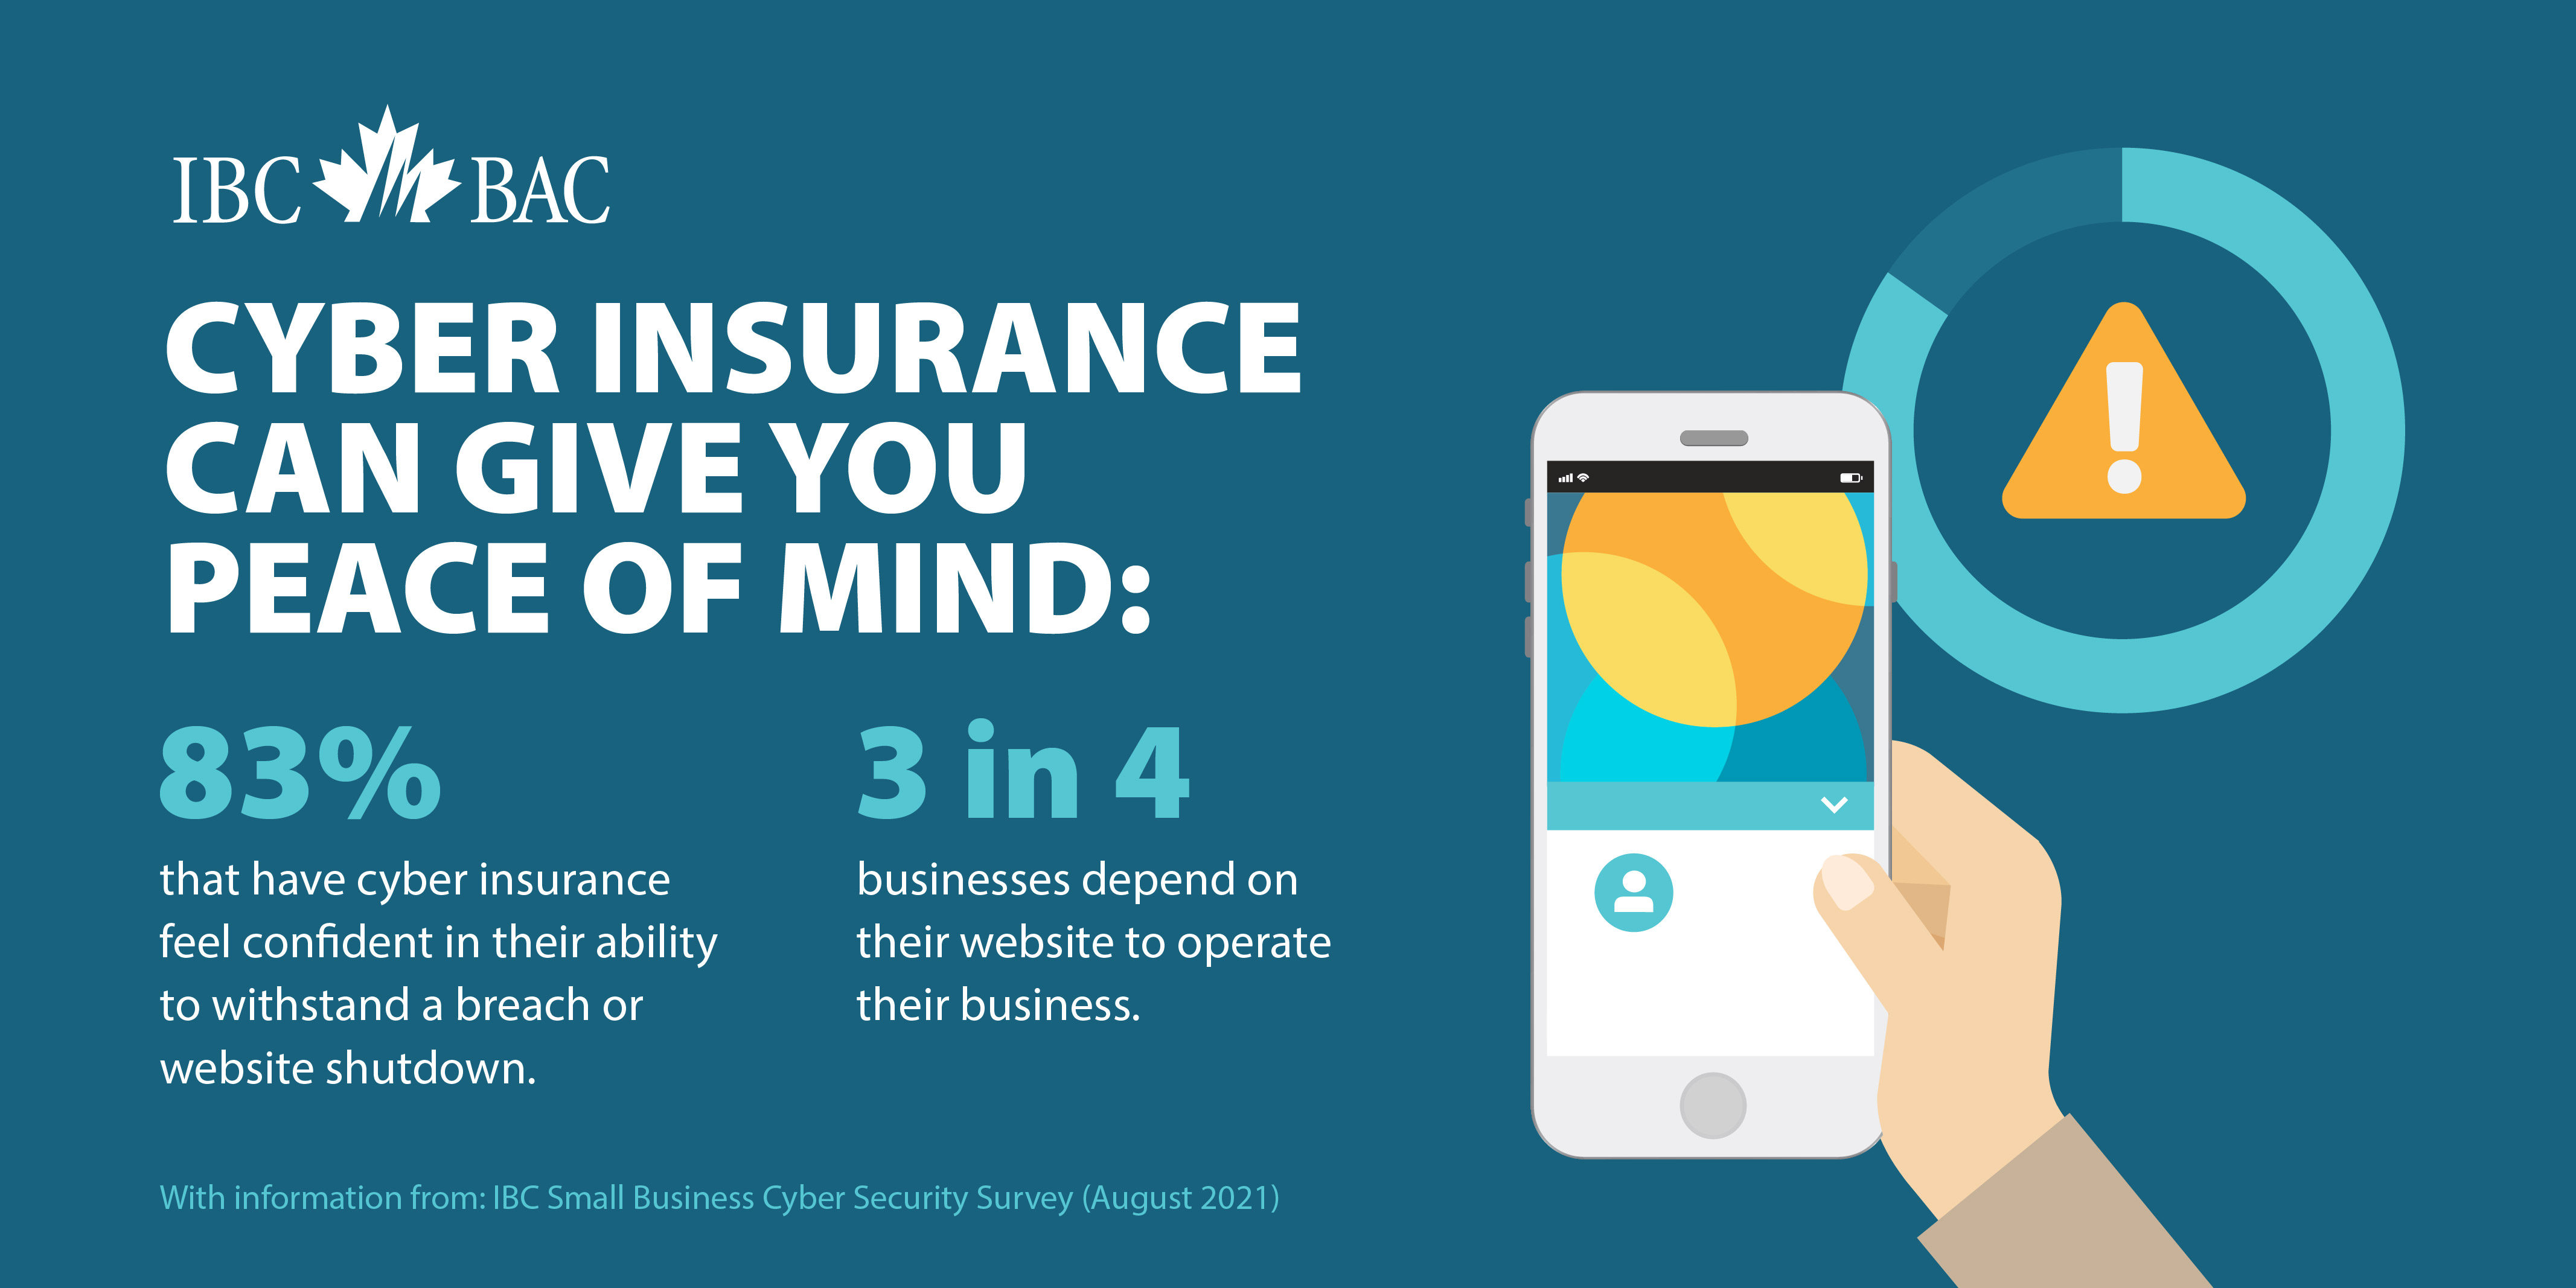 Cyber insurance can give you peace of mind